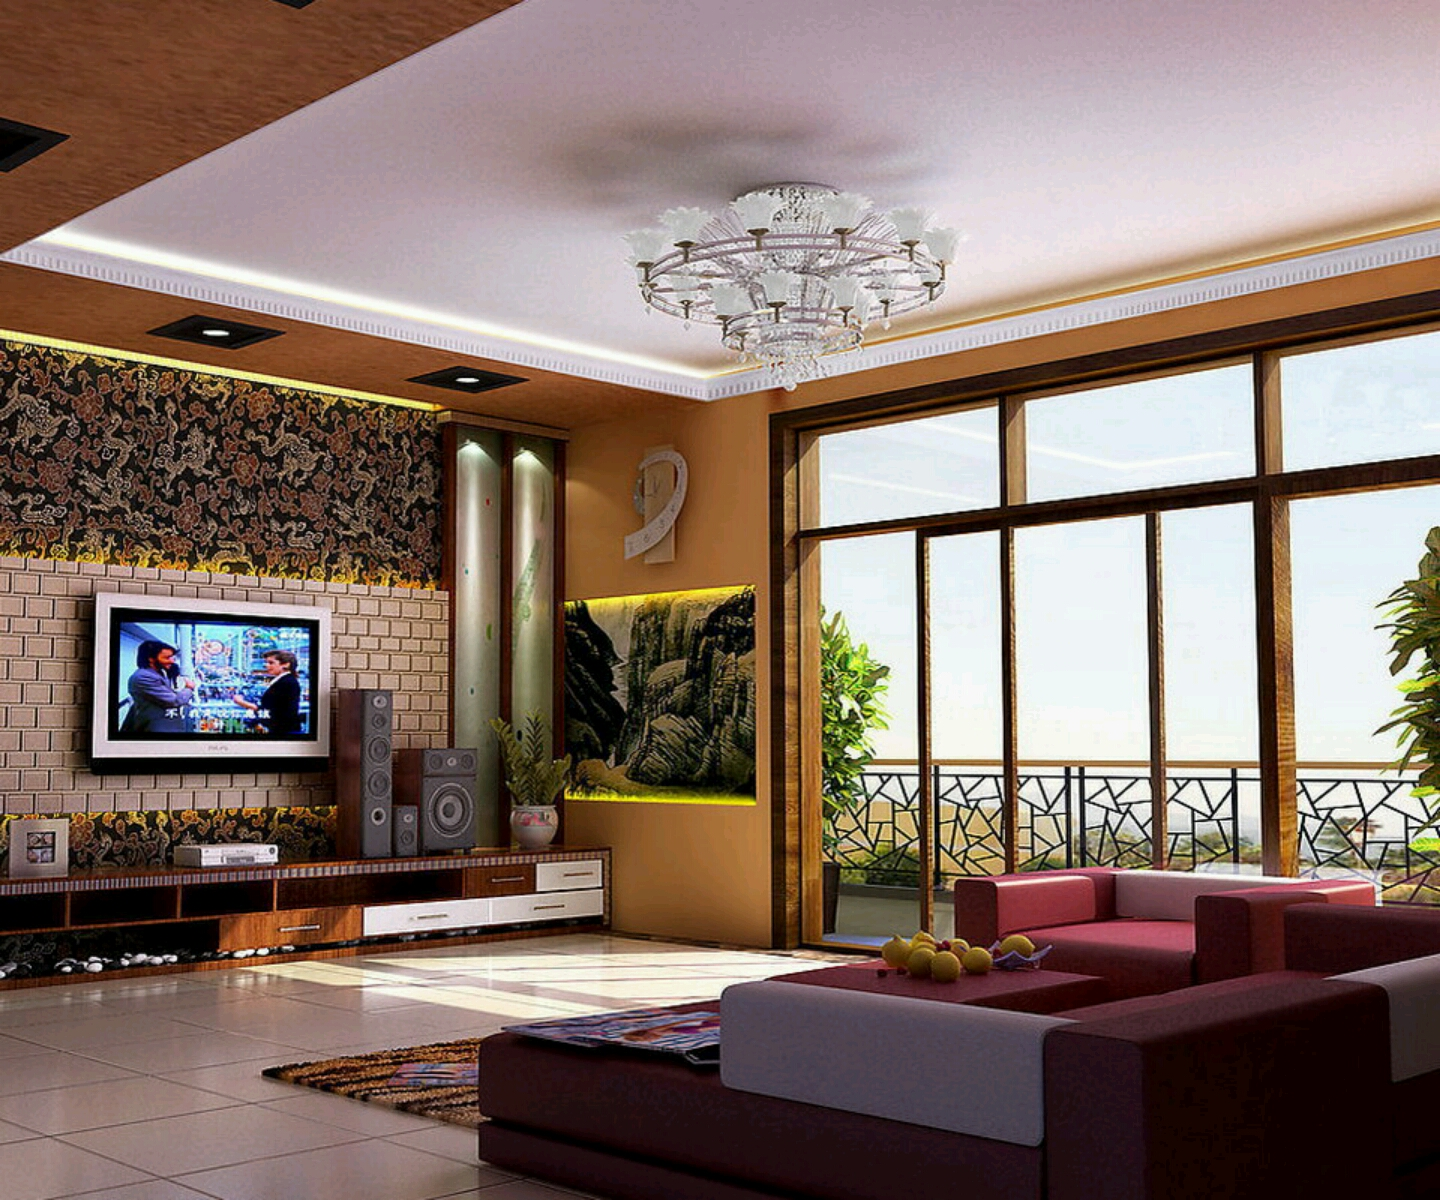 Home Ideas Pakistan: New Home Designs Latest.: Modern Living Room Designs Ideas